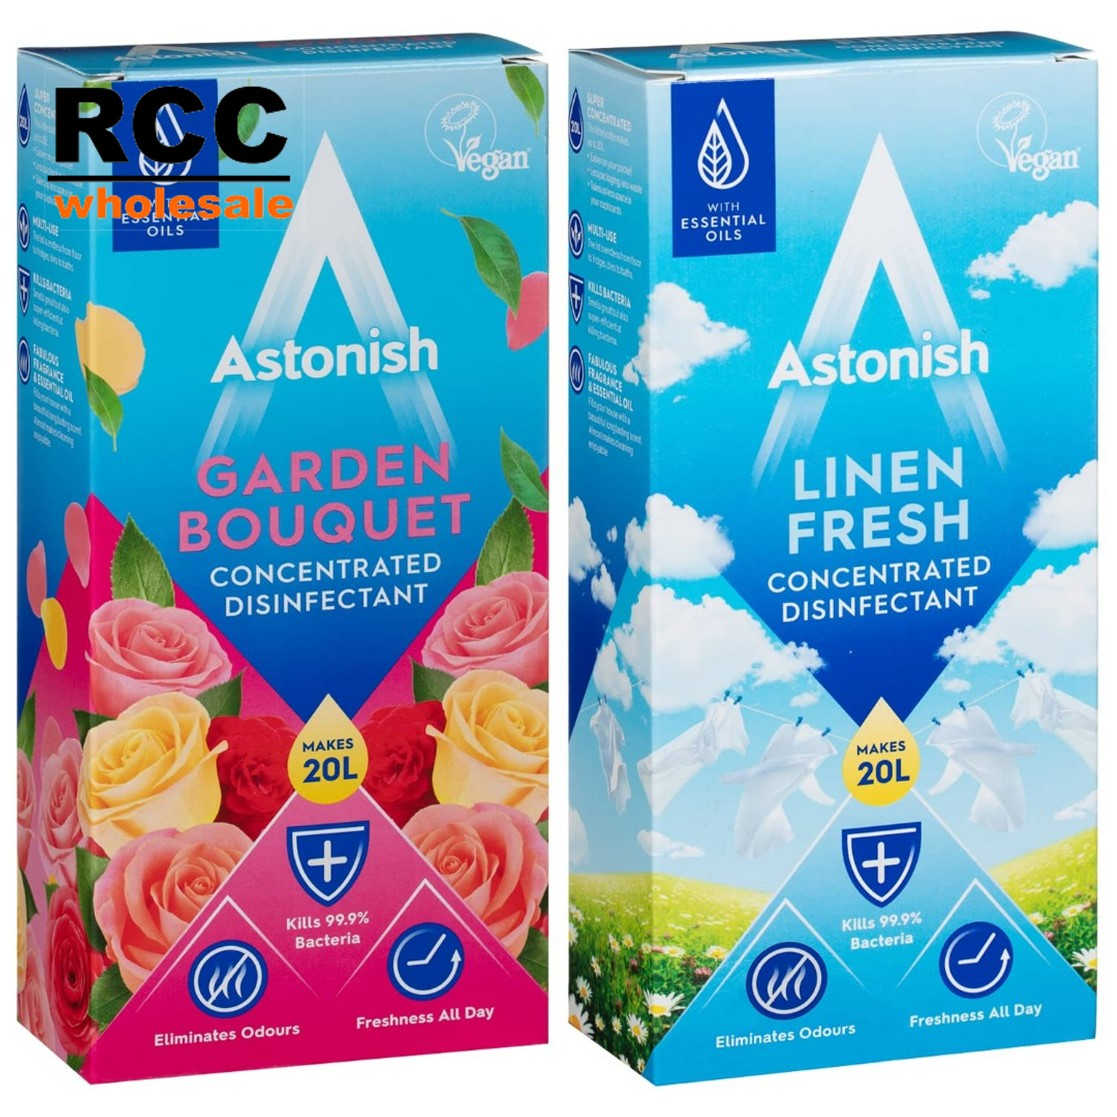 Astonish Concentrated Disinfectant 500ml  Now Available! Unbelievably when diluted this makes 20 litres of fresh smelling heaven. Much better value than a strangely named similar product. Gotta be happy with that! #rccwholesale #astonish #astonishcleaners# #cleaningproducts pic.twitter.com/nIngRBPb5A